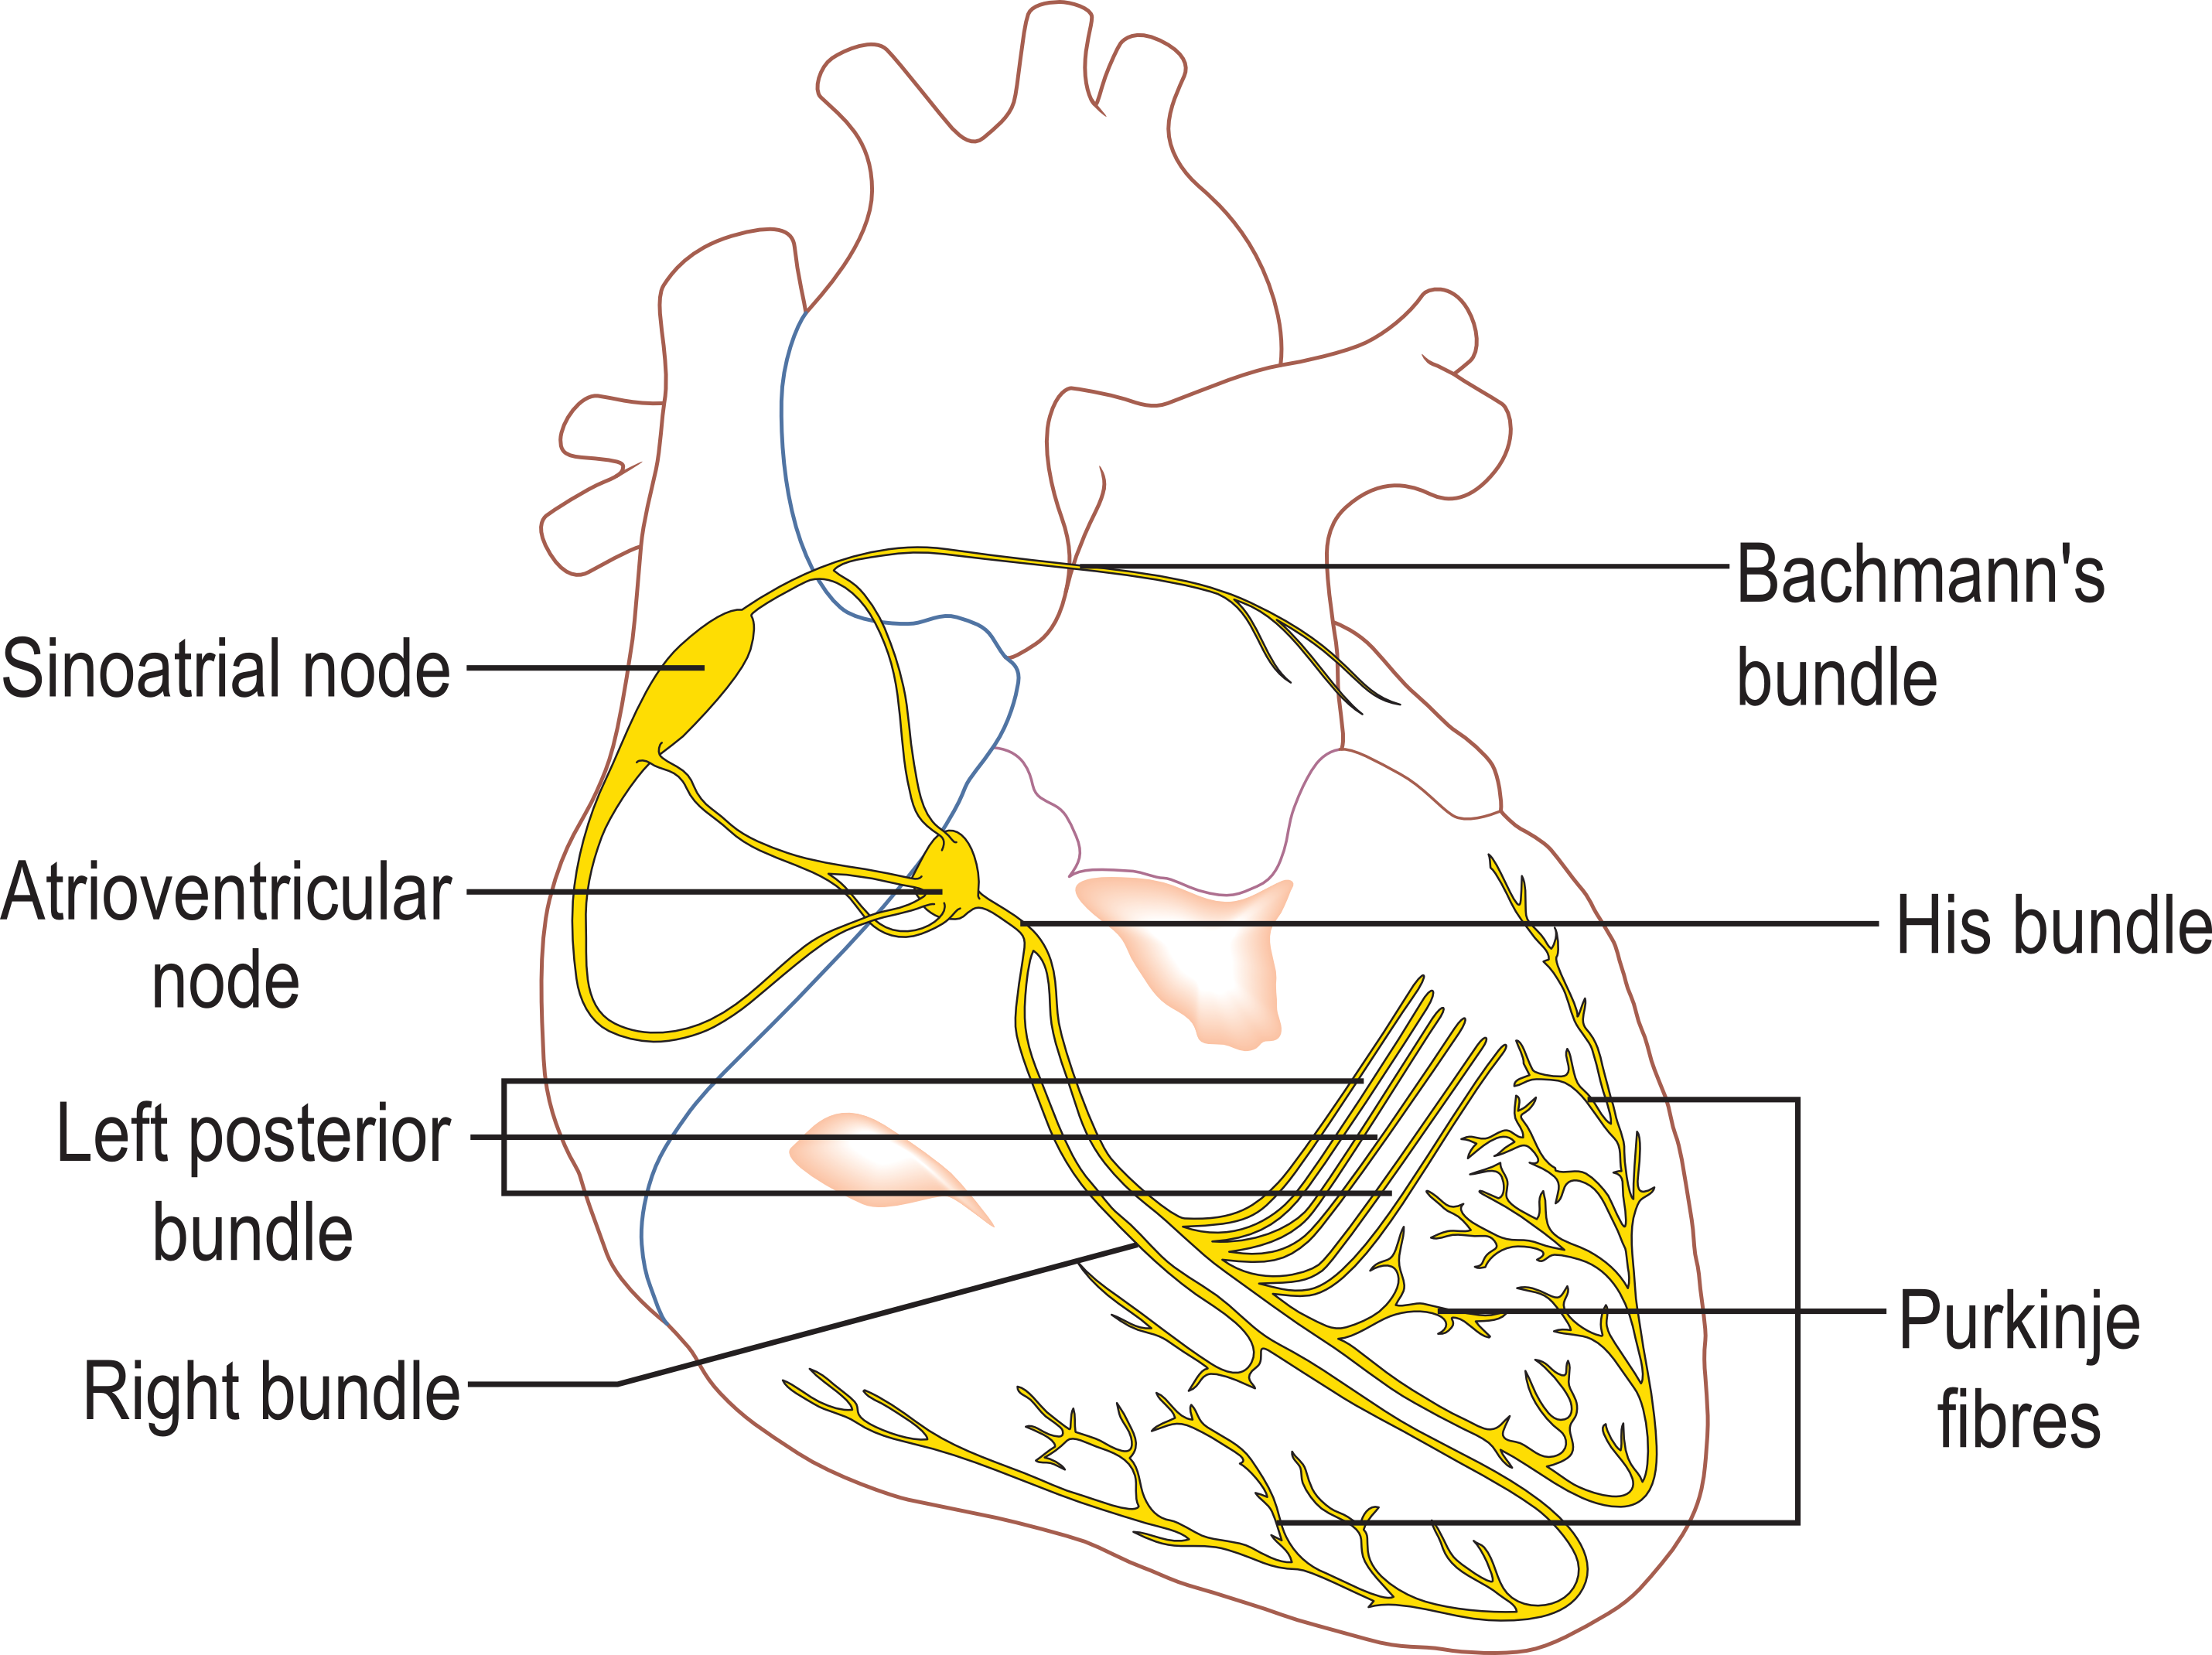 Second degree or third degree atrioventricular block ems 12 lead conduction system of the heart ccuart Image collections